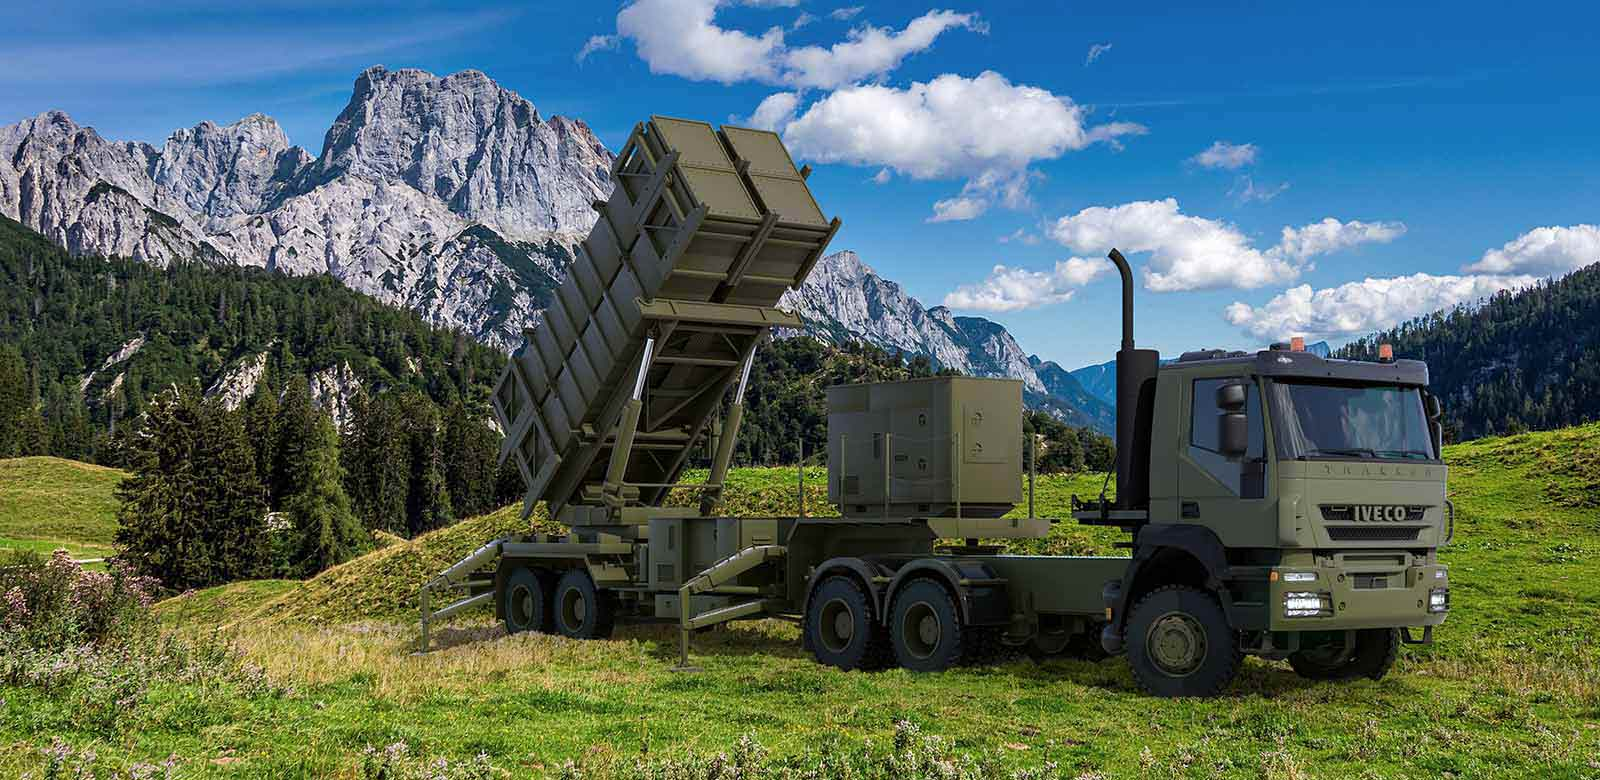 Switzerland Selects Patriot Configuration 3+ For Future Air Defense Requirements